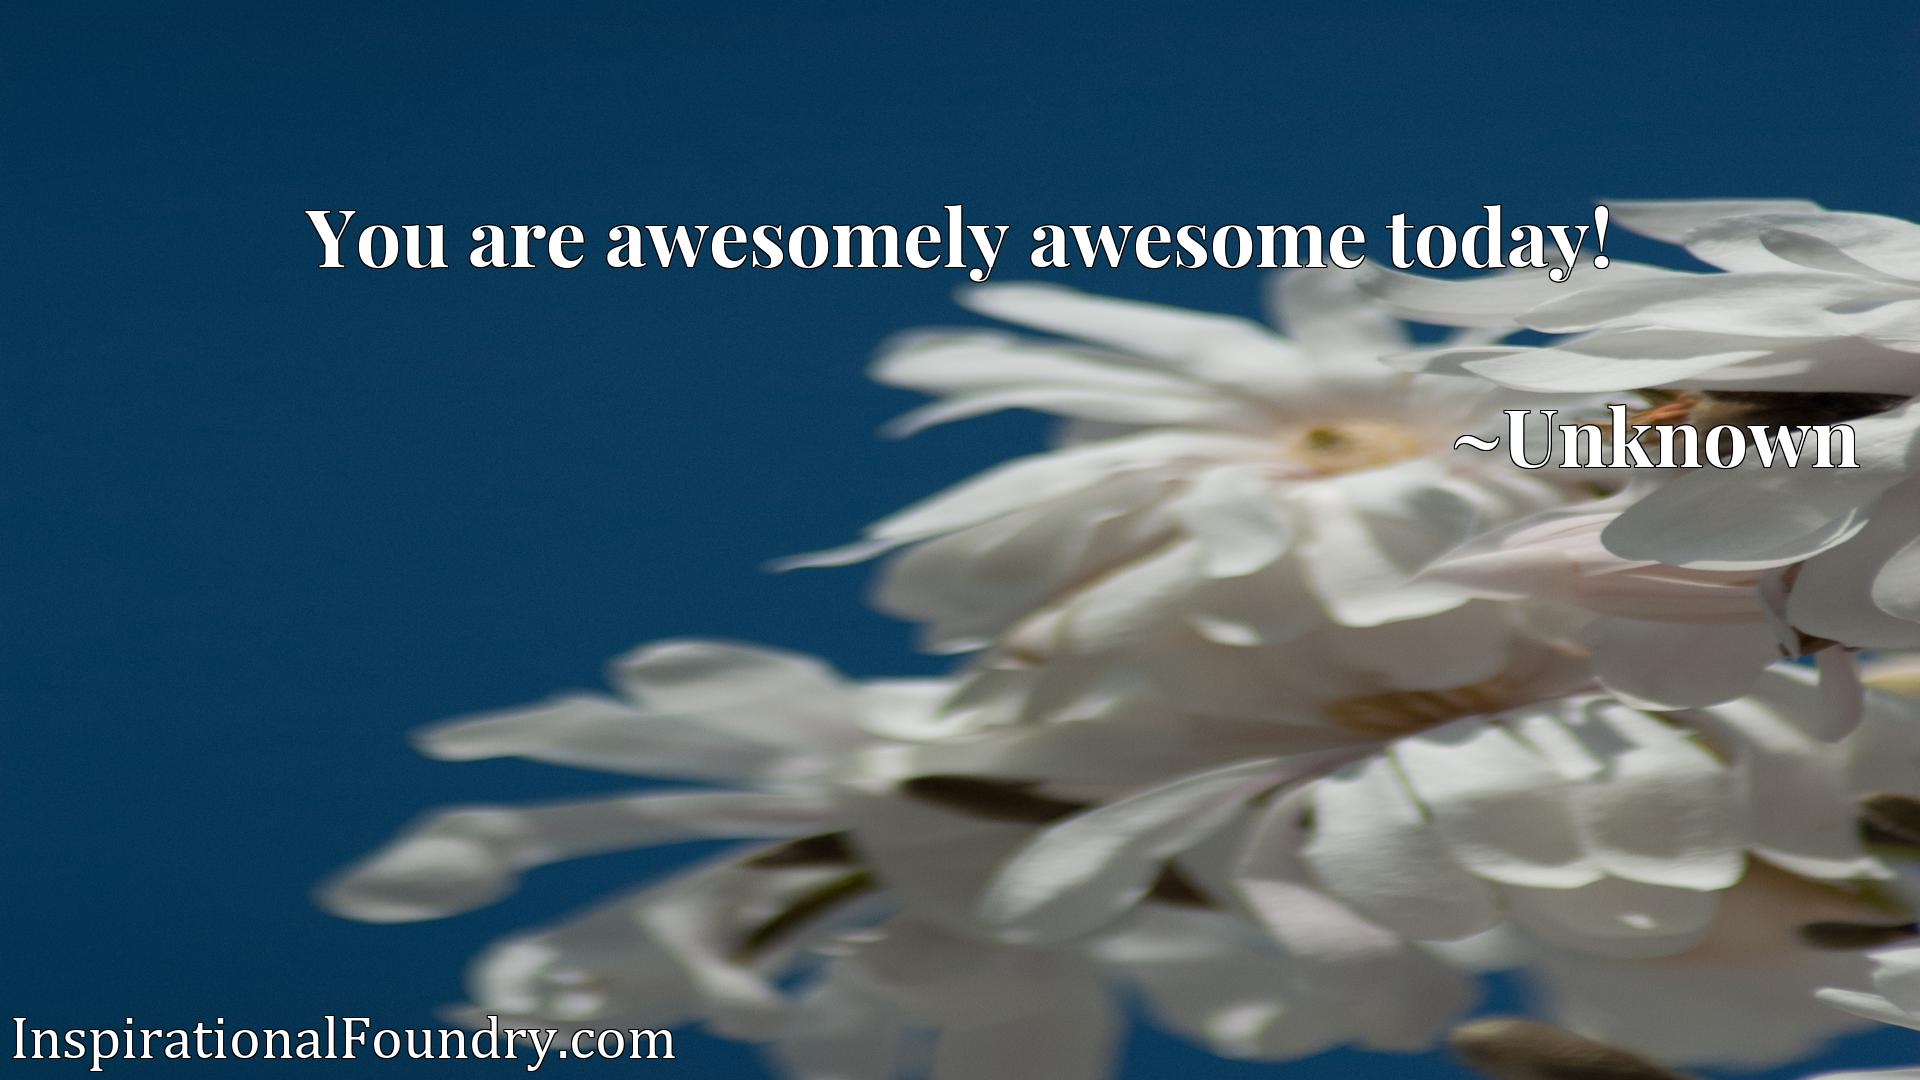 You are awesomely awesome today!